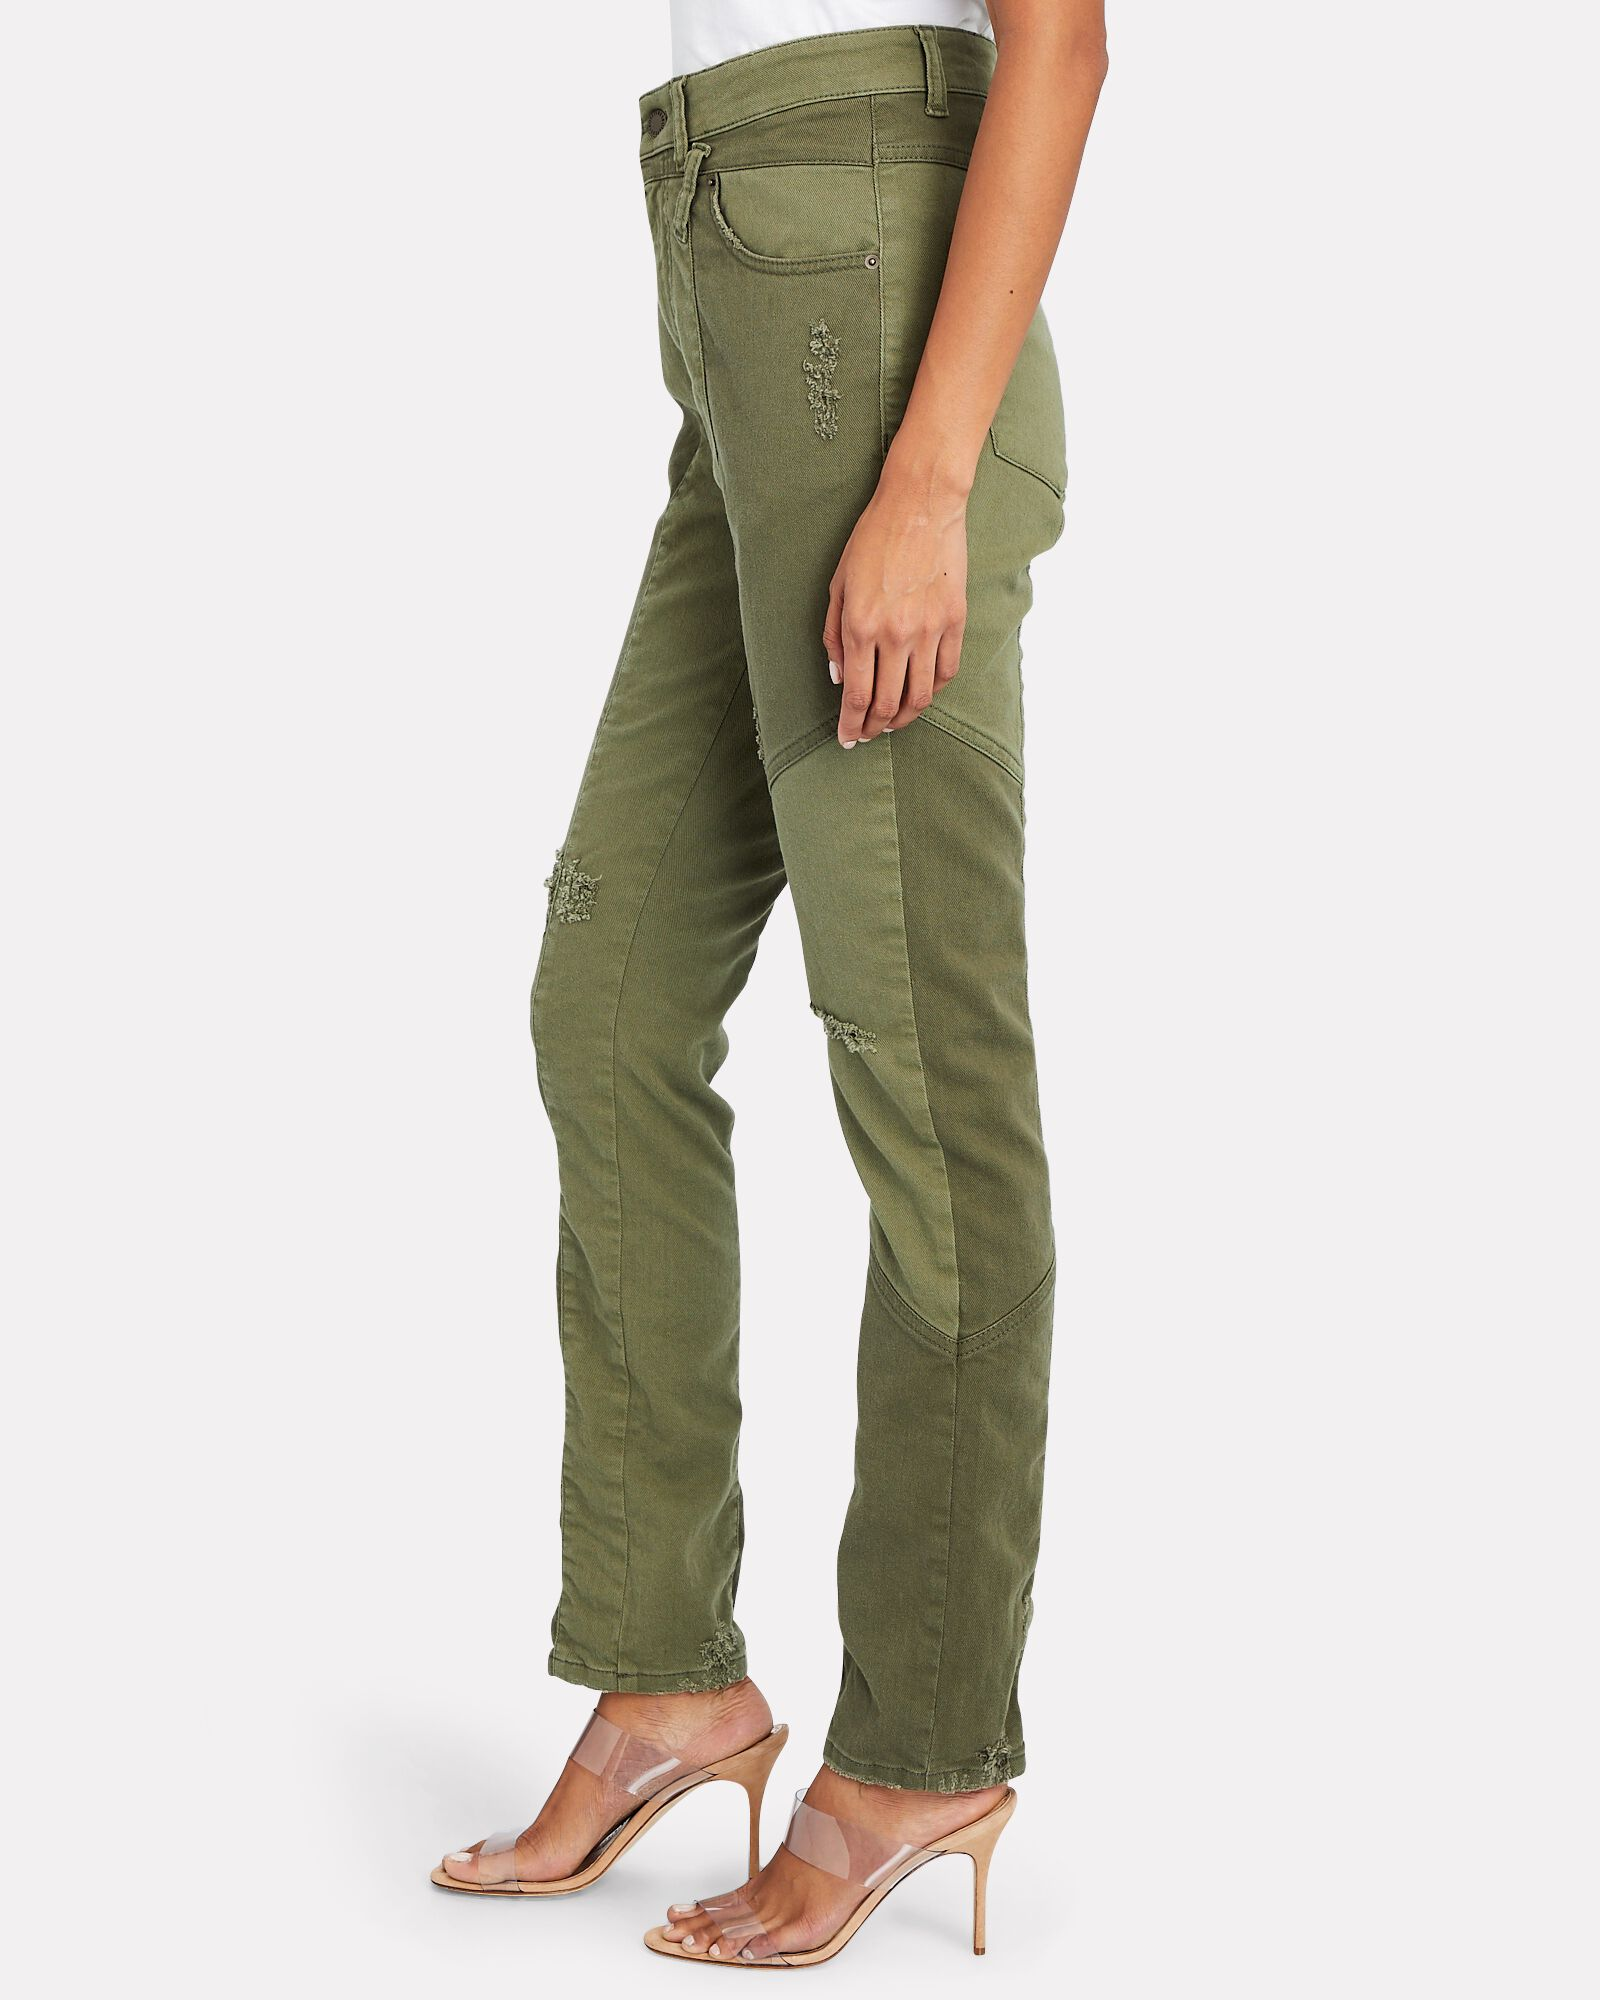 Taryn High-Rise Skinny Jeans, OLIVE/ARMY, hi-res